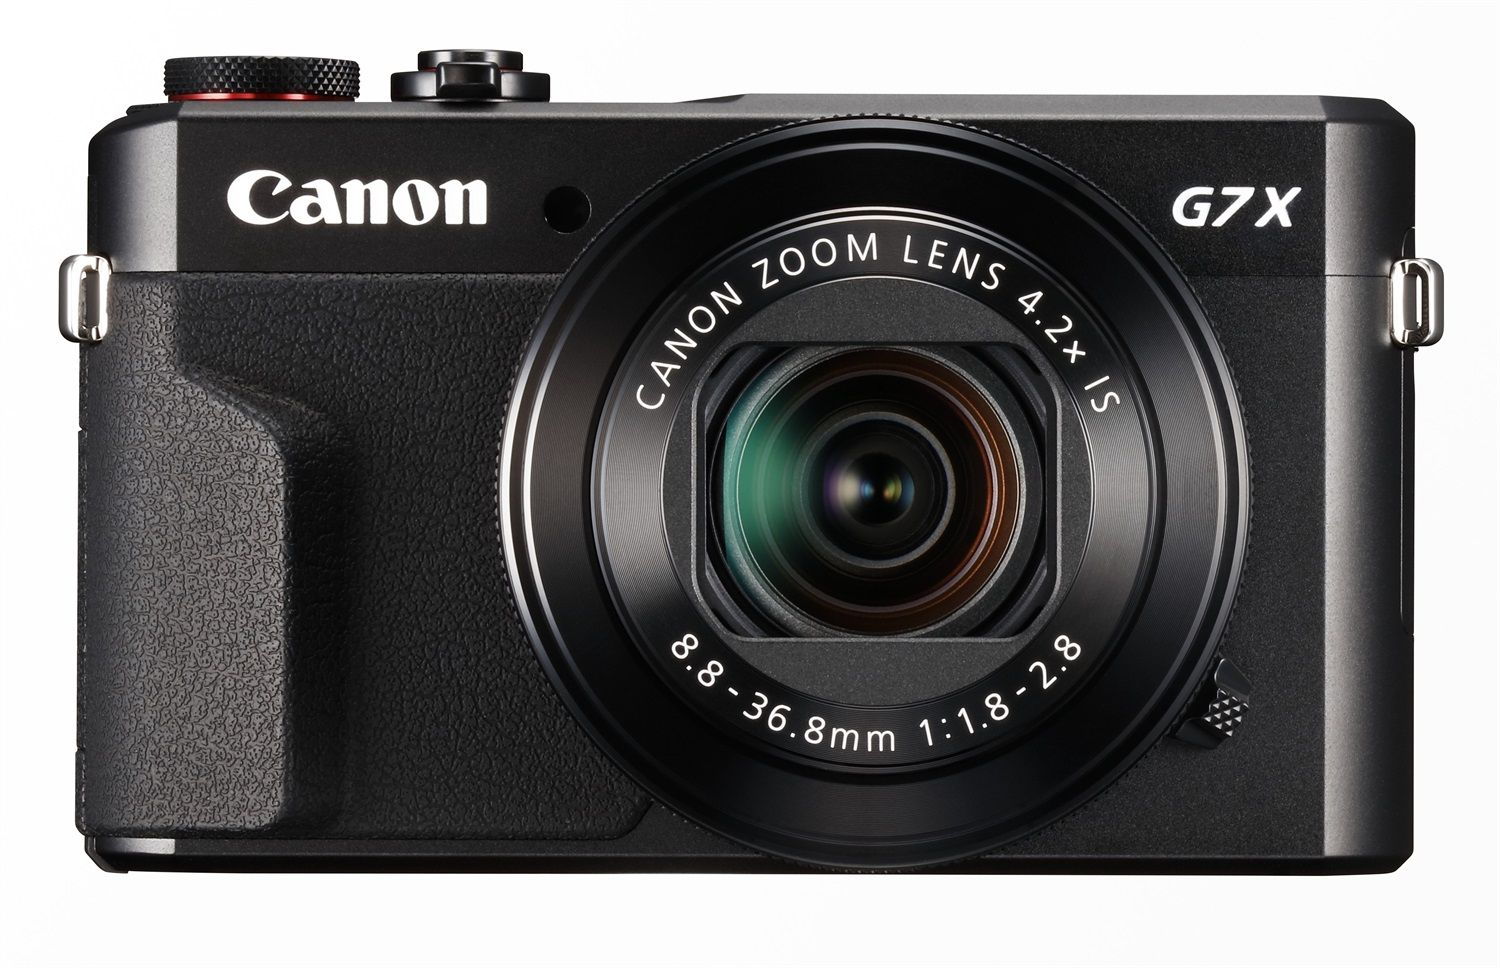 Fotocamera Digitale Canon PowerShot G7 X Mark II